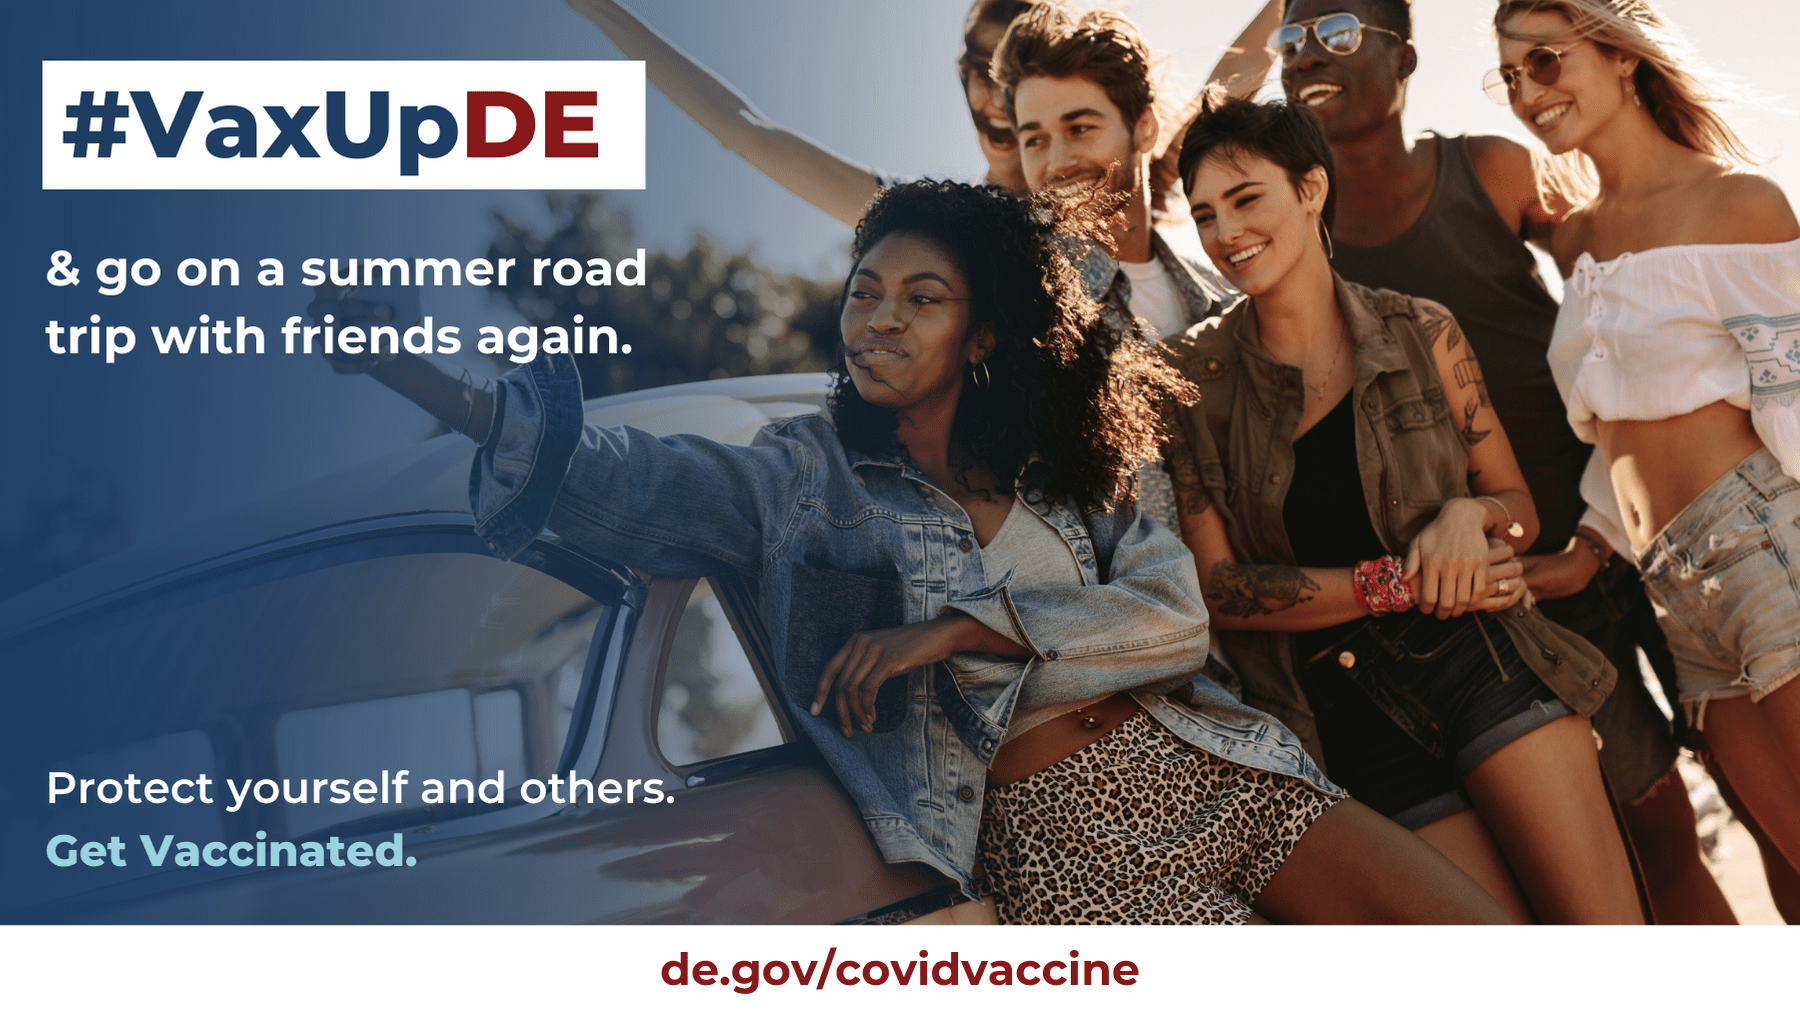 VaxUpDE and go on a summer road trip with friends again. Protect yourself and others. Get vaccinated. A group of friends smiling outside in front of a car.